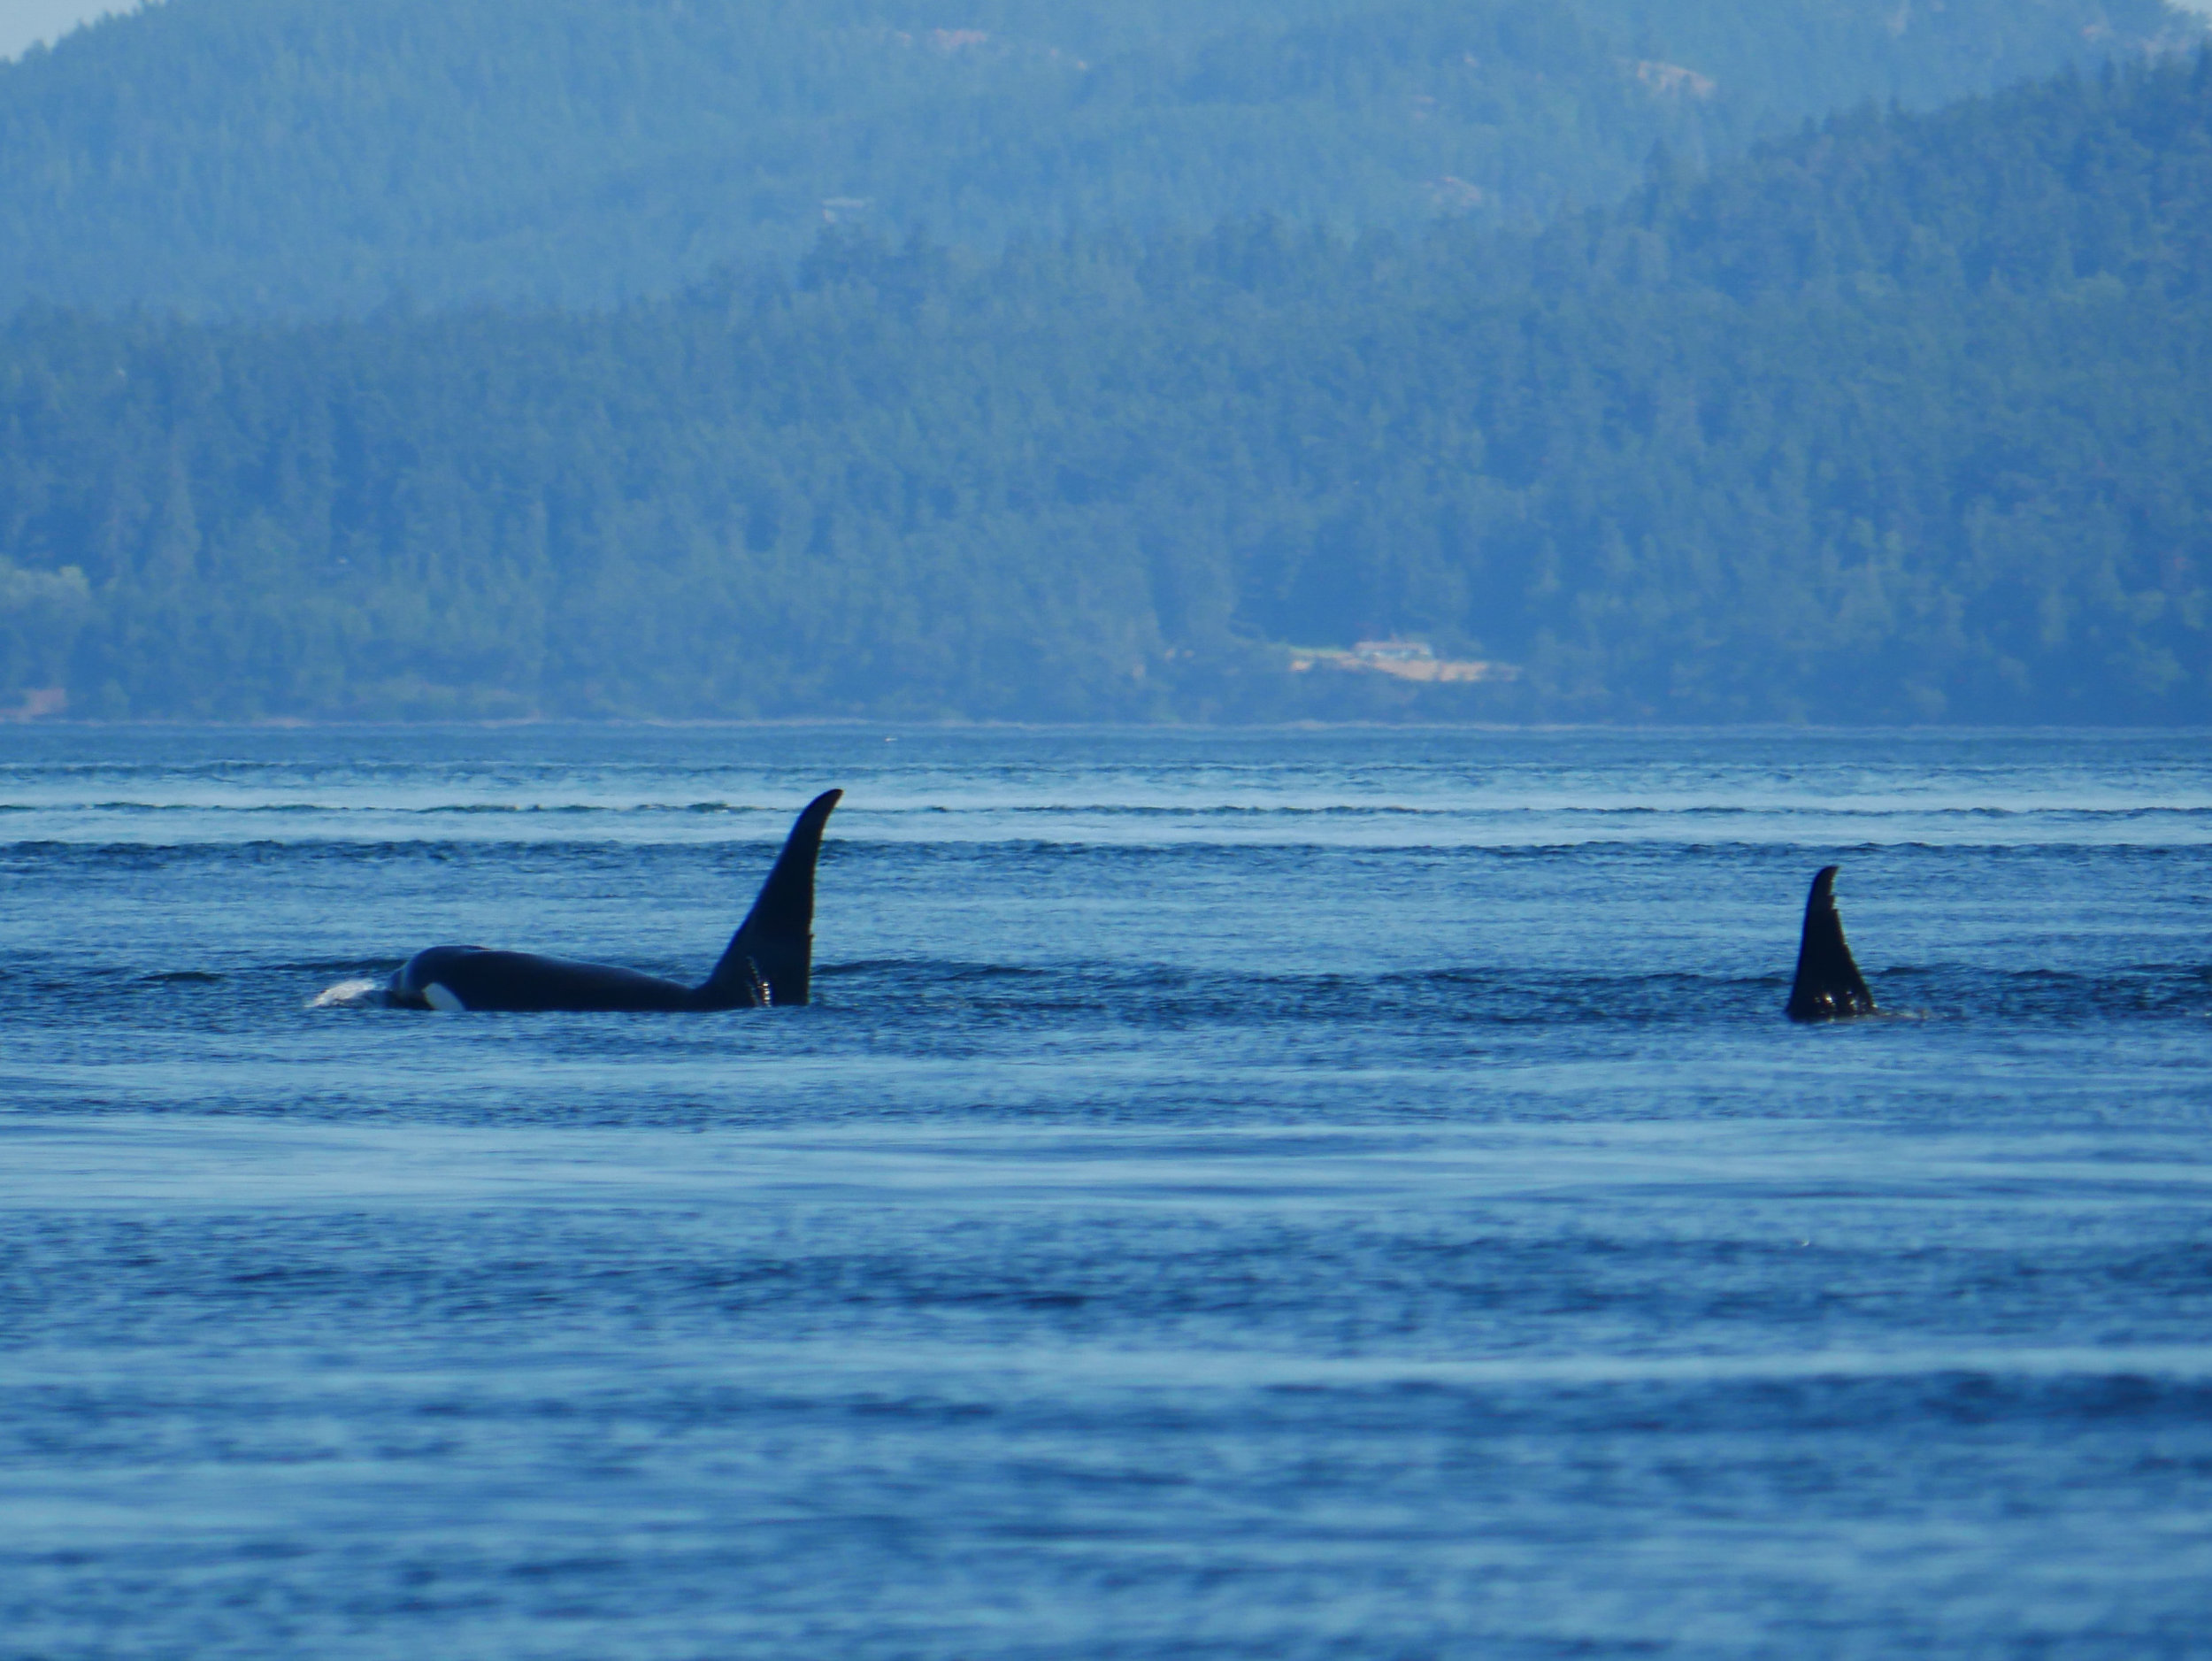 T46E (left) and T46D (right) surfacing off of Saturna Island. Their large dorsal fins and evident nicks make them easy to ID. Photo by Alanna Vivani